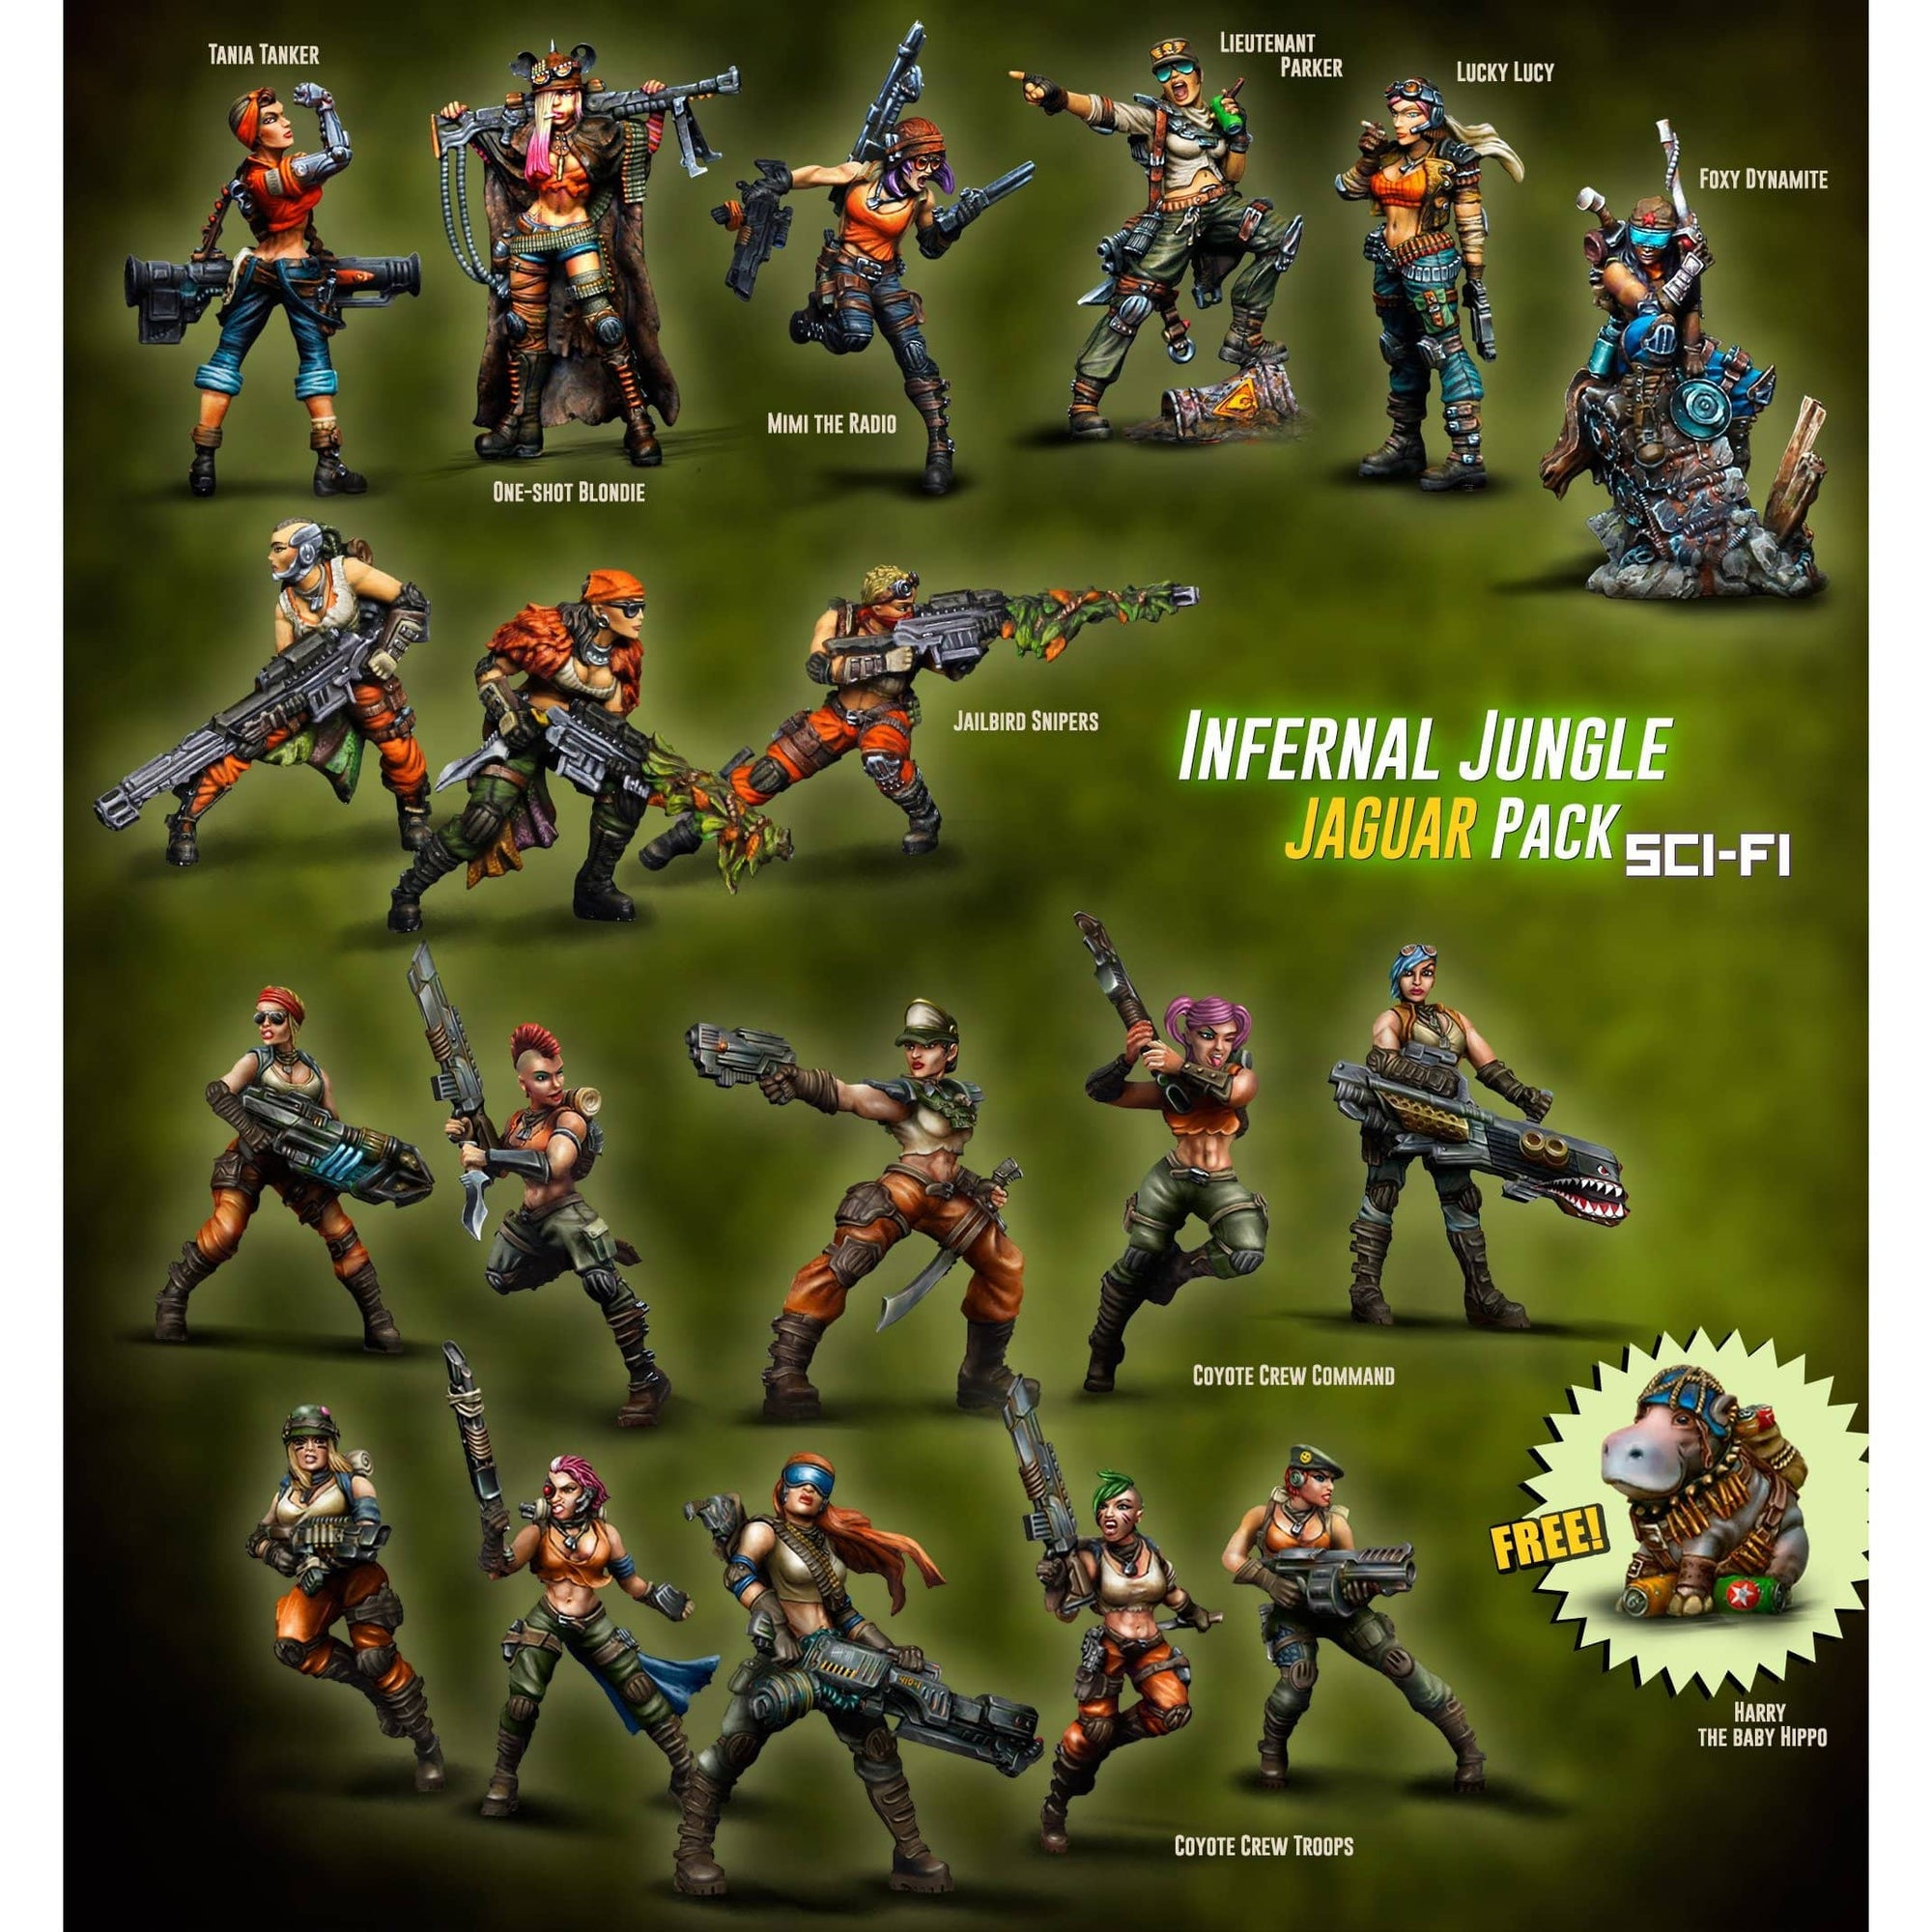 Infernal Jungle JAGUAR Pack (JB) - Raging Heroes